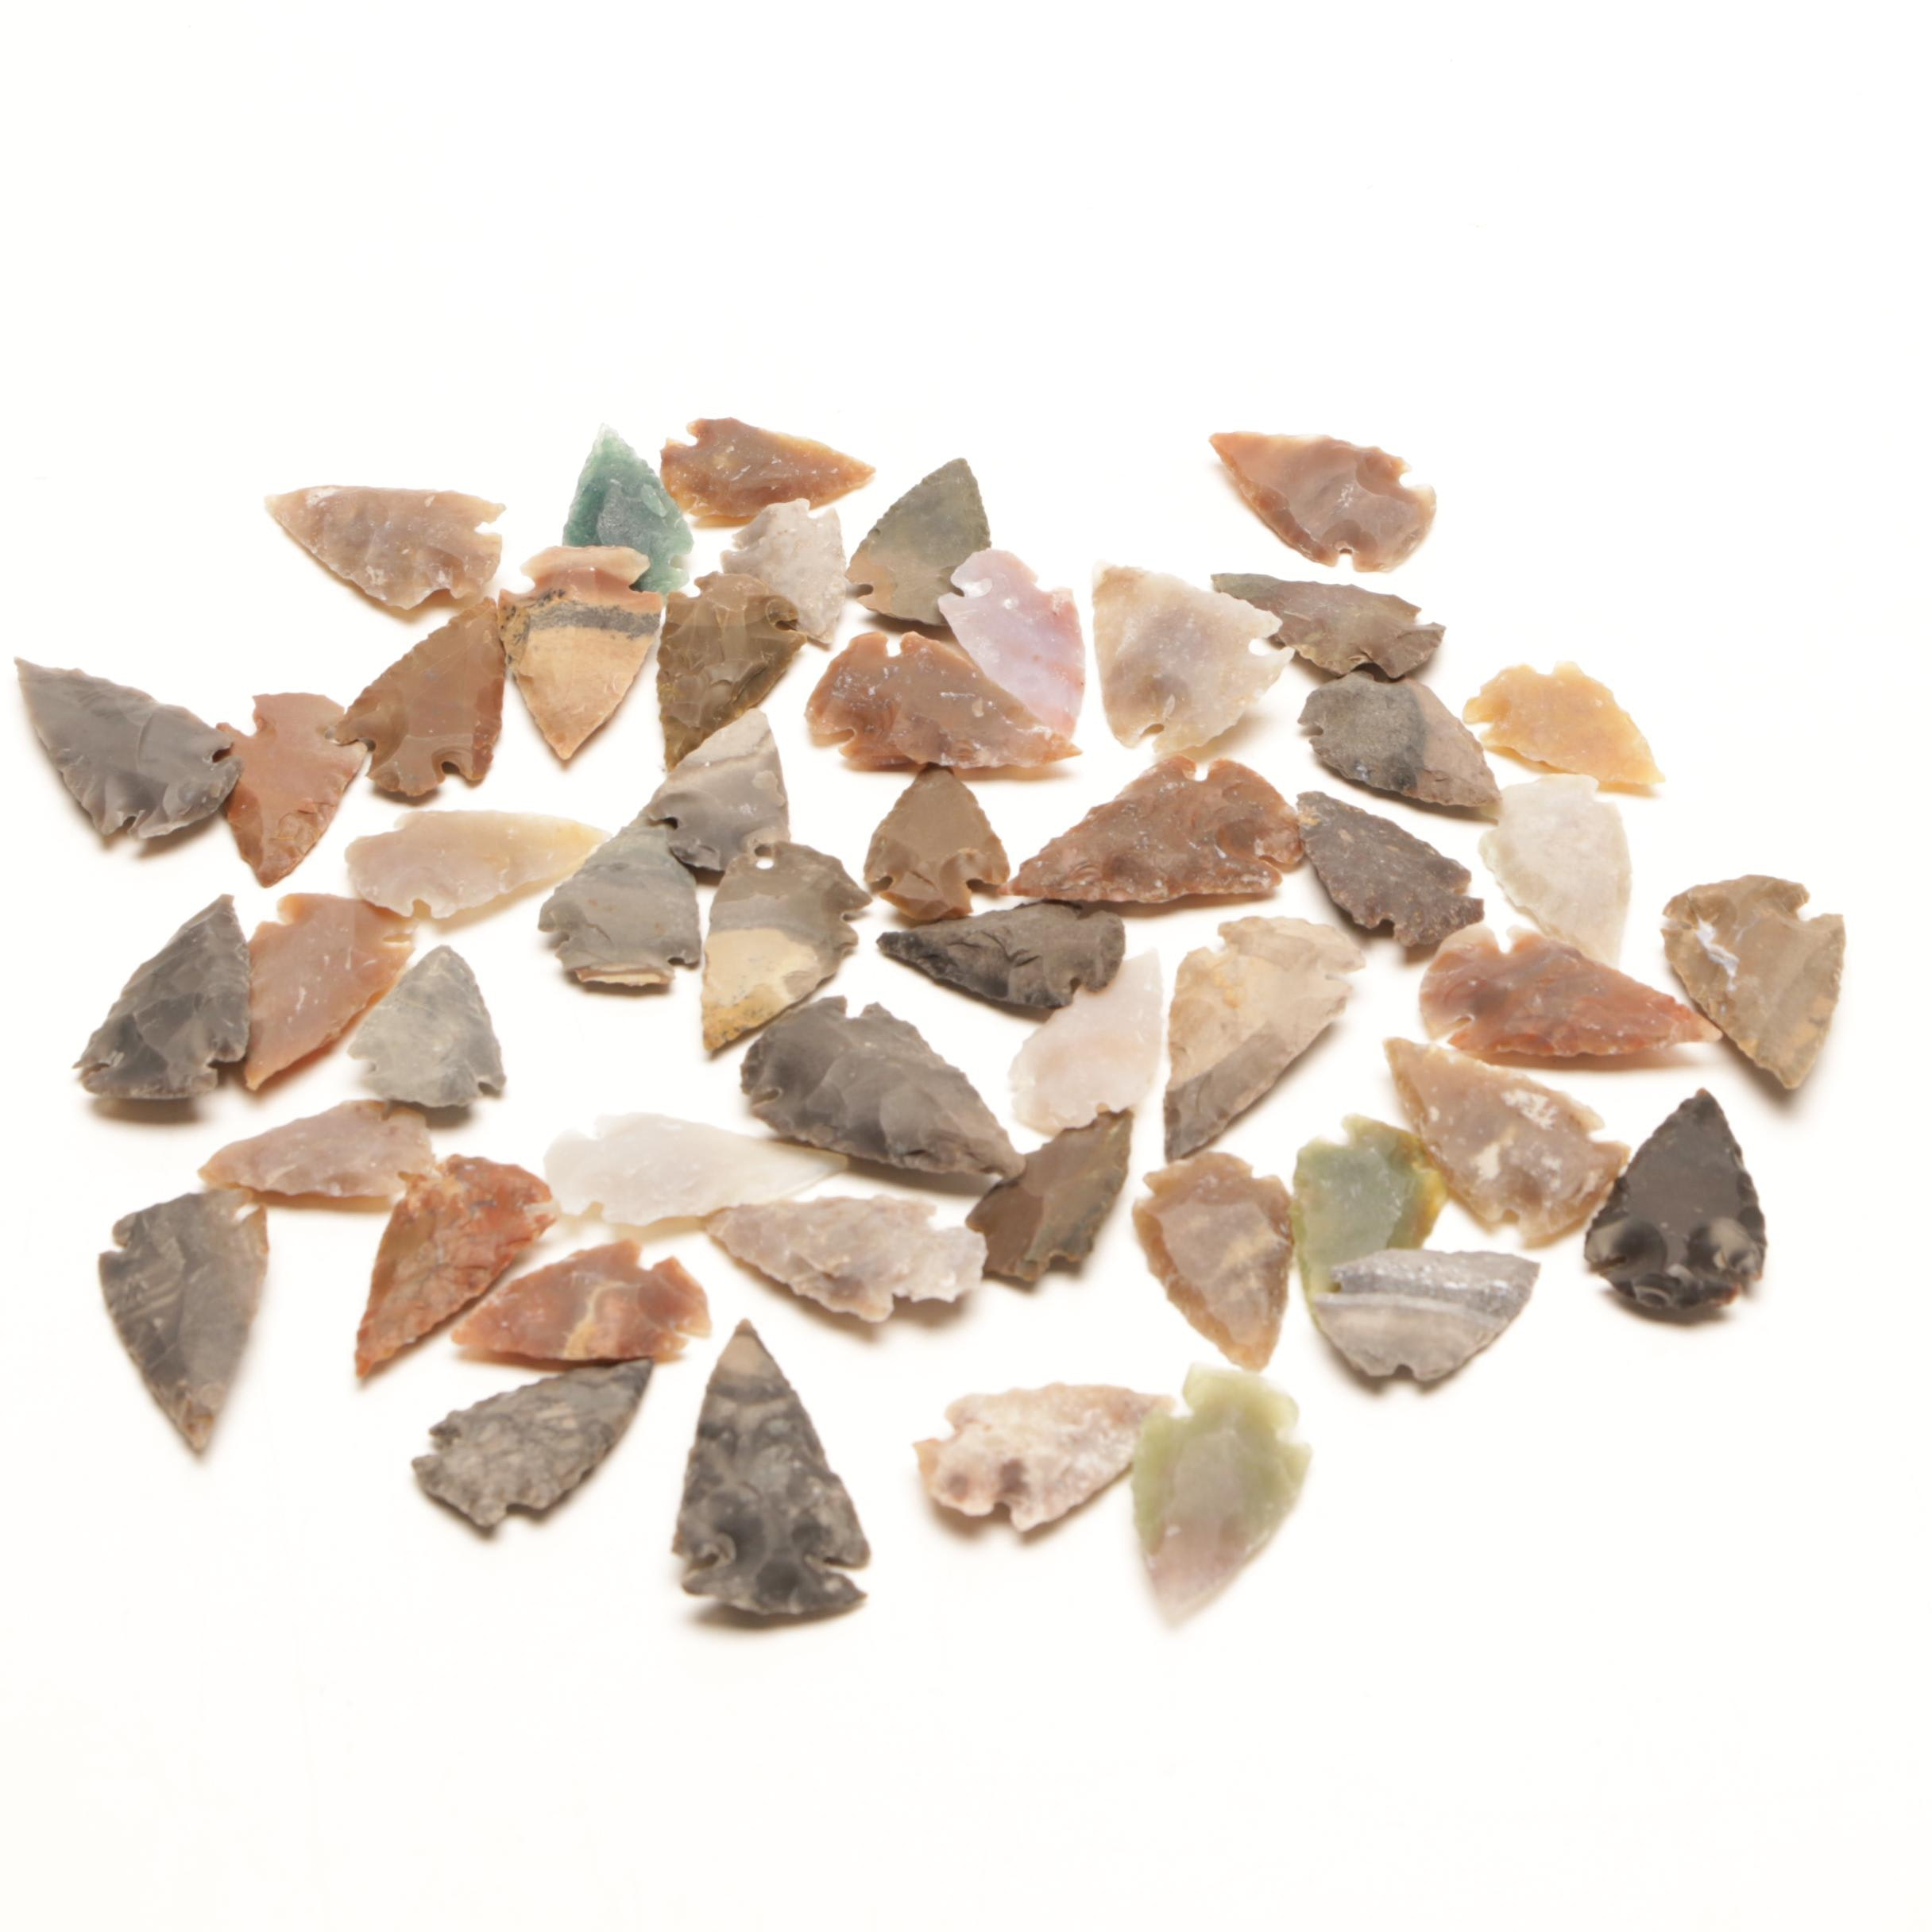 Reproduction Late Prehistoric Style Projectile Points